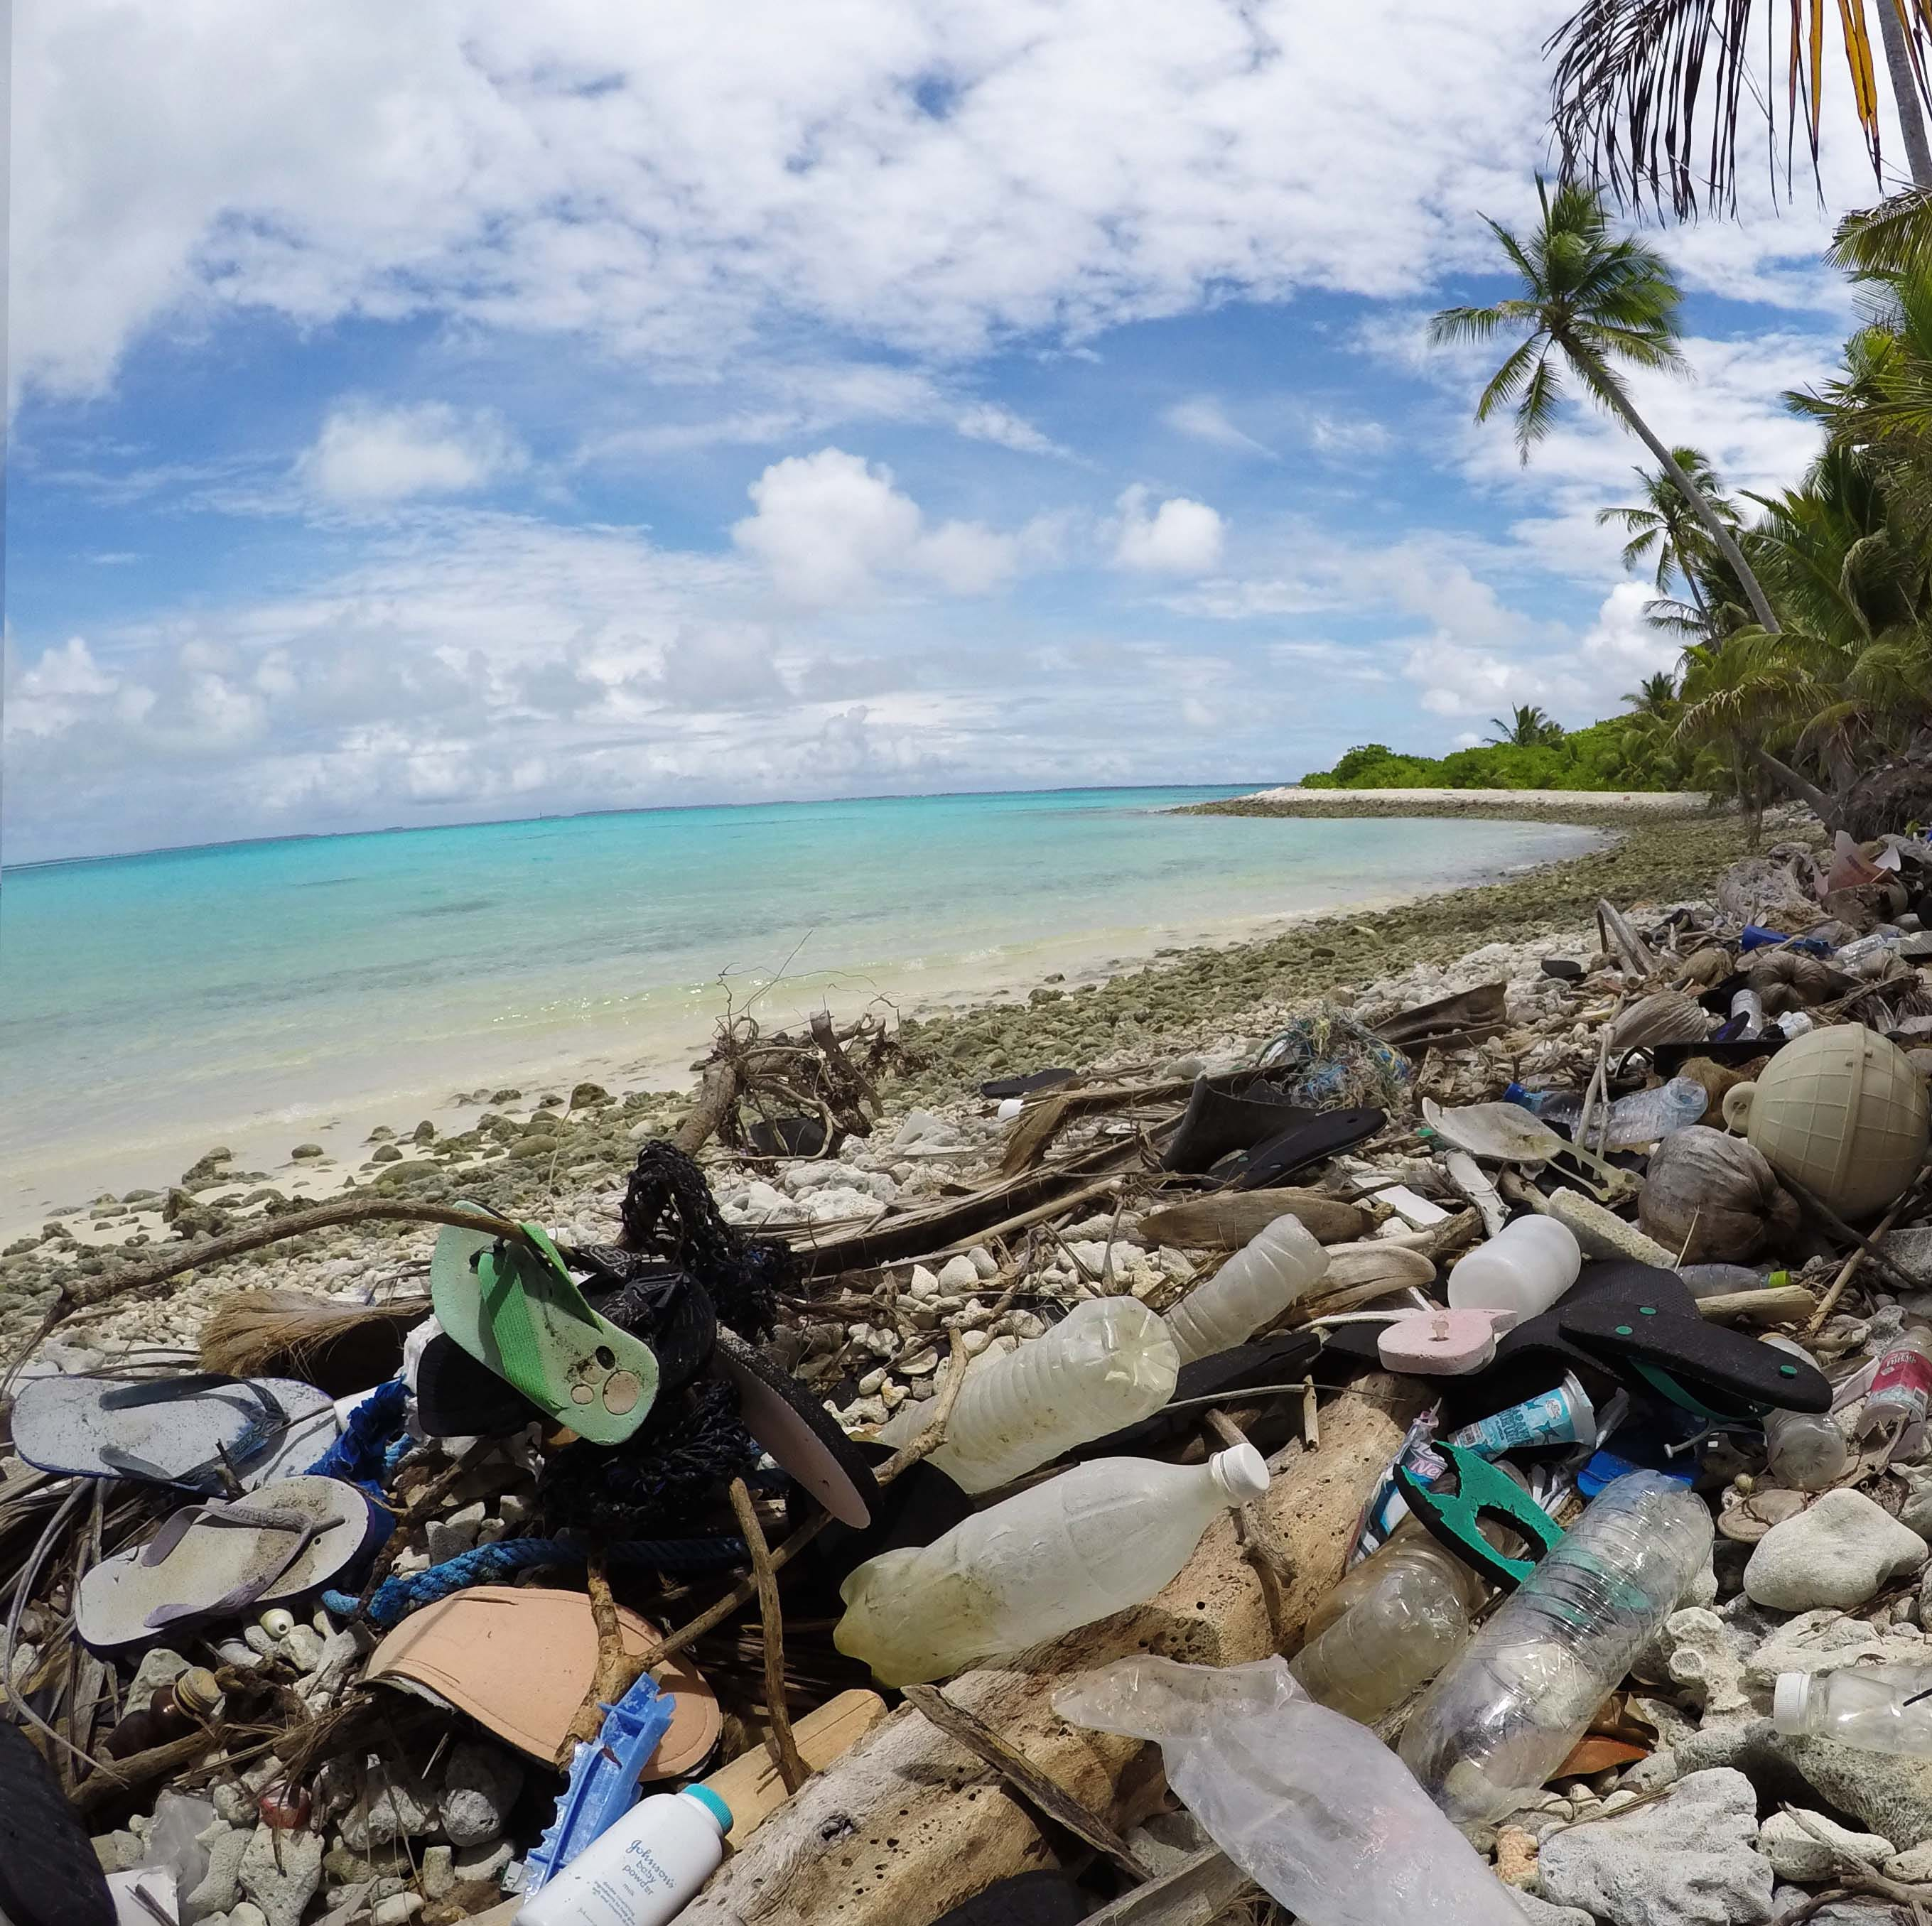 Paradise lost: 400 million pieces of trash discovered on beaches of remote tropical islands